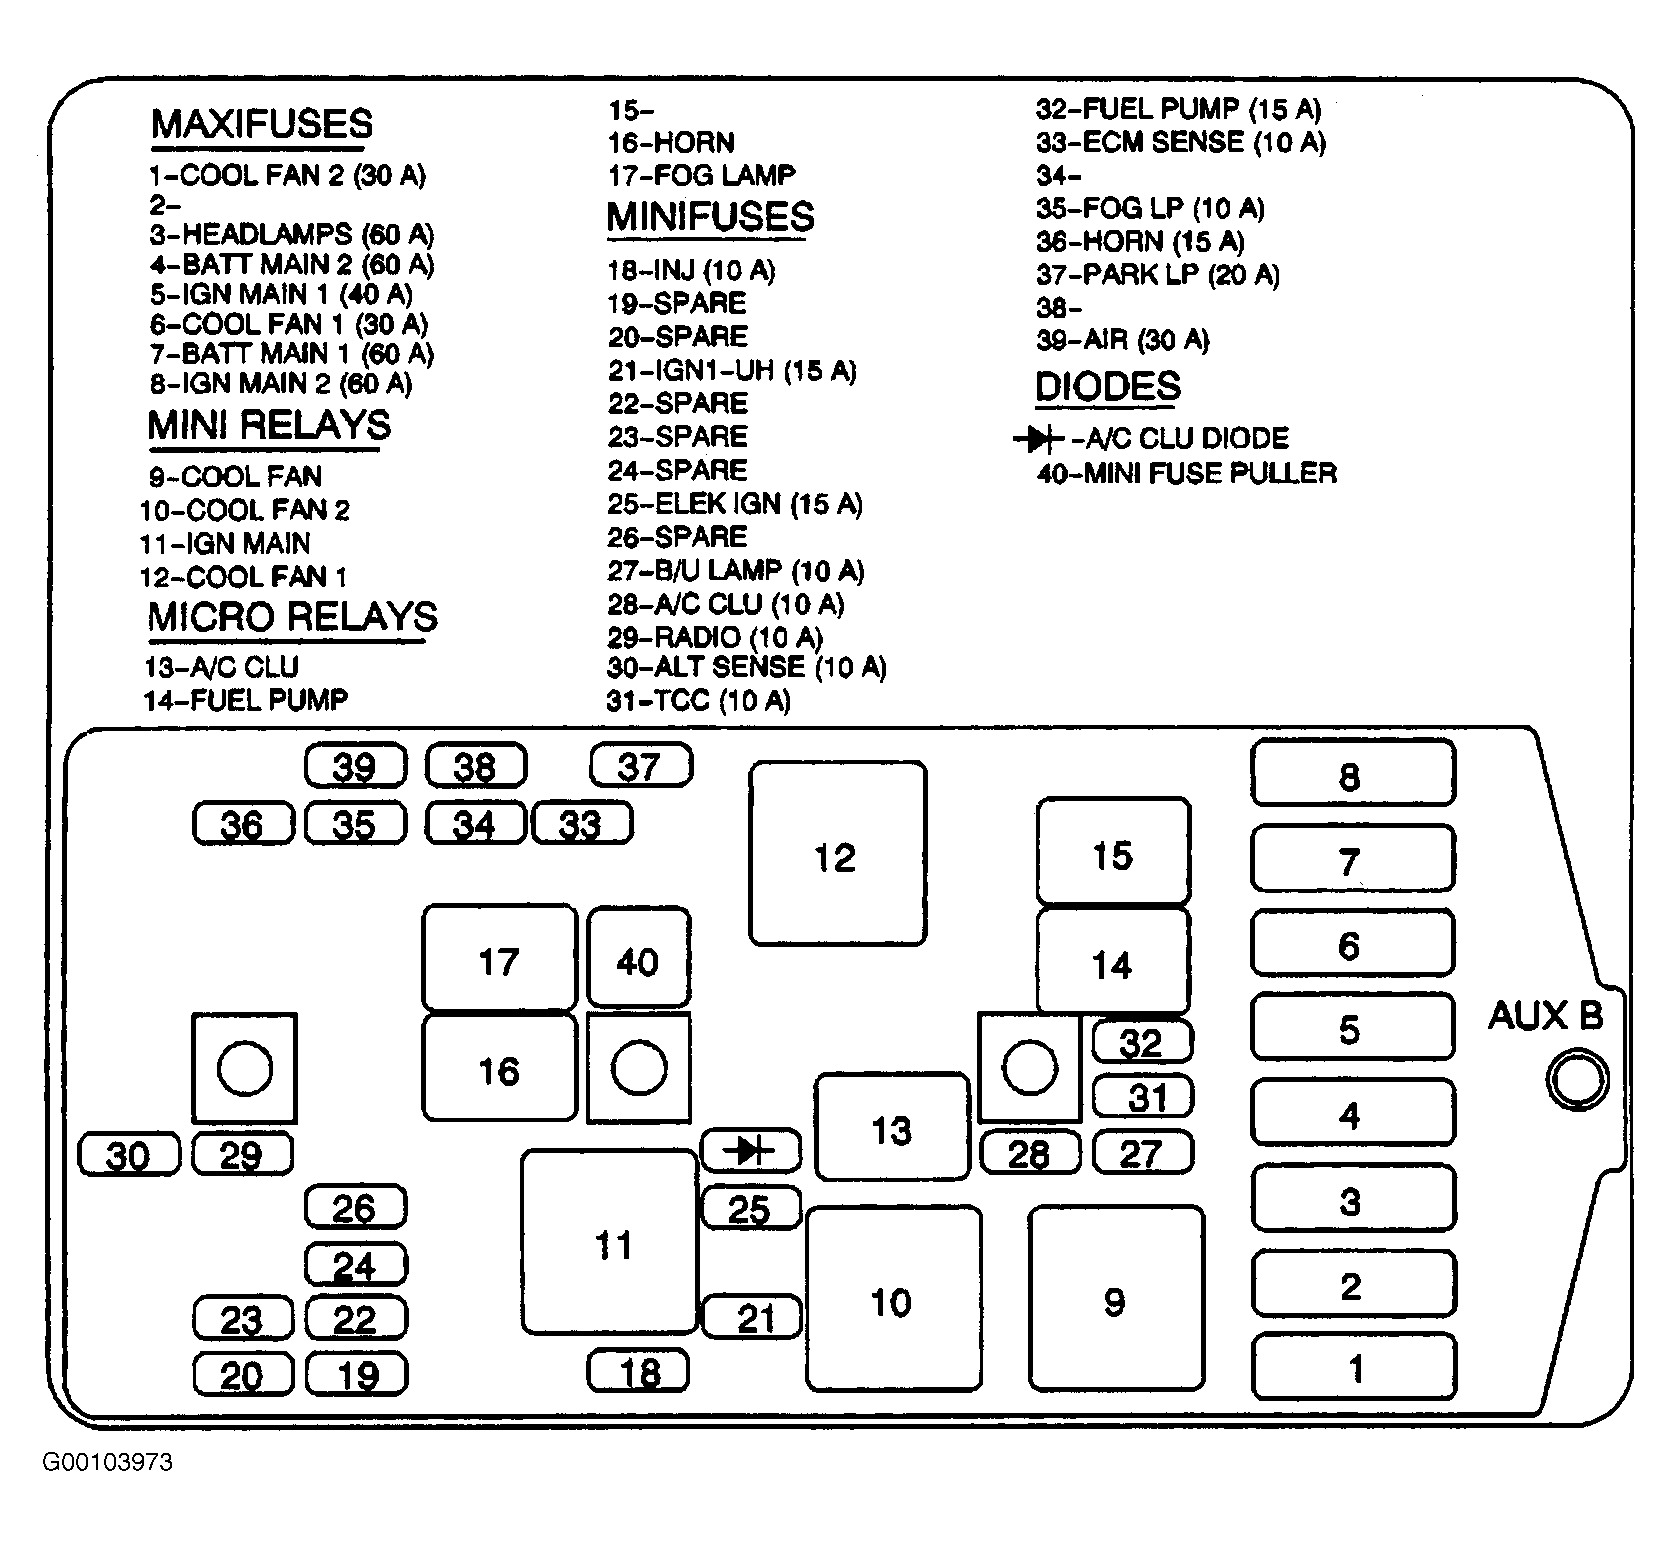 2003 Chevy Venture Fuse Box Diagram : 35 Wiring Diagram